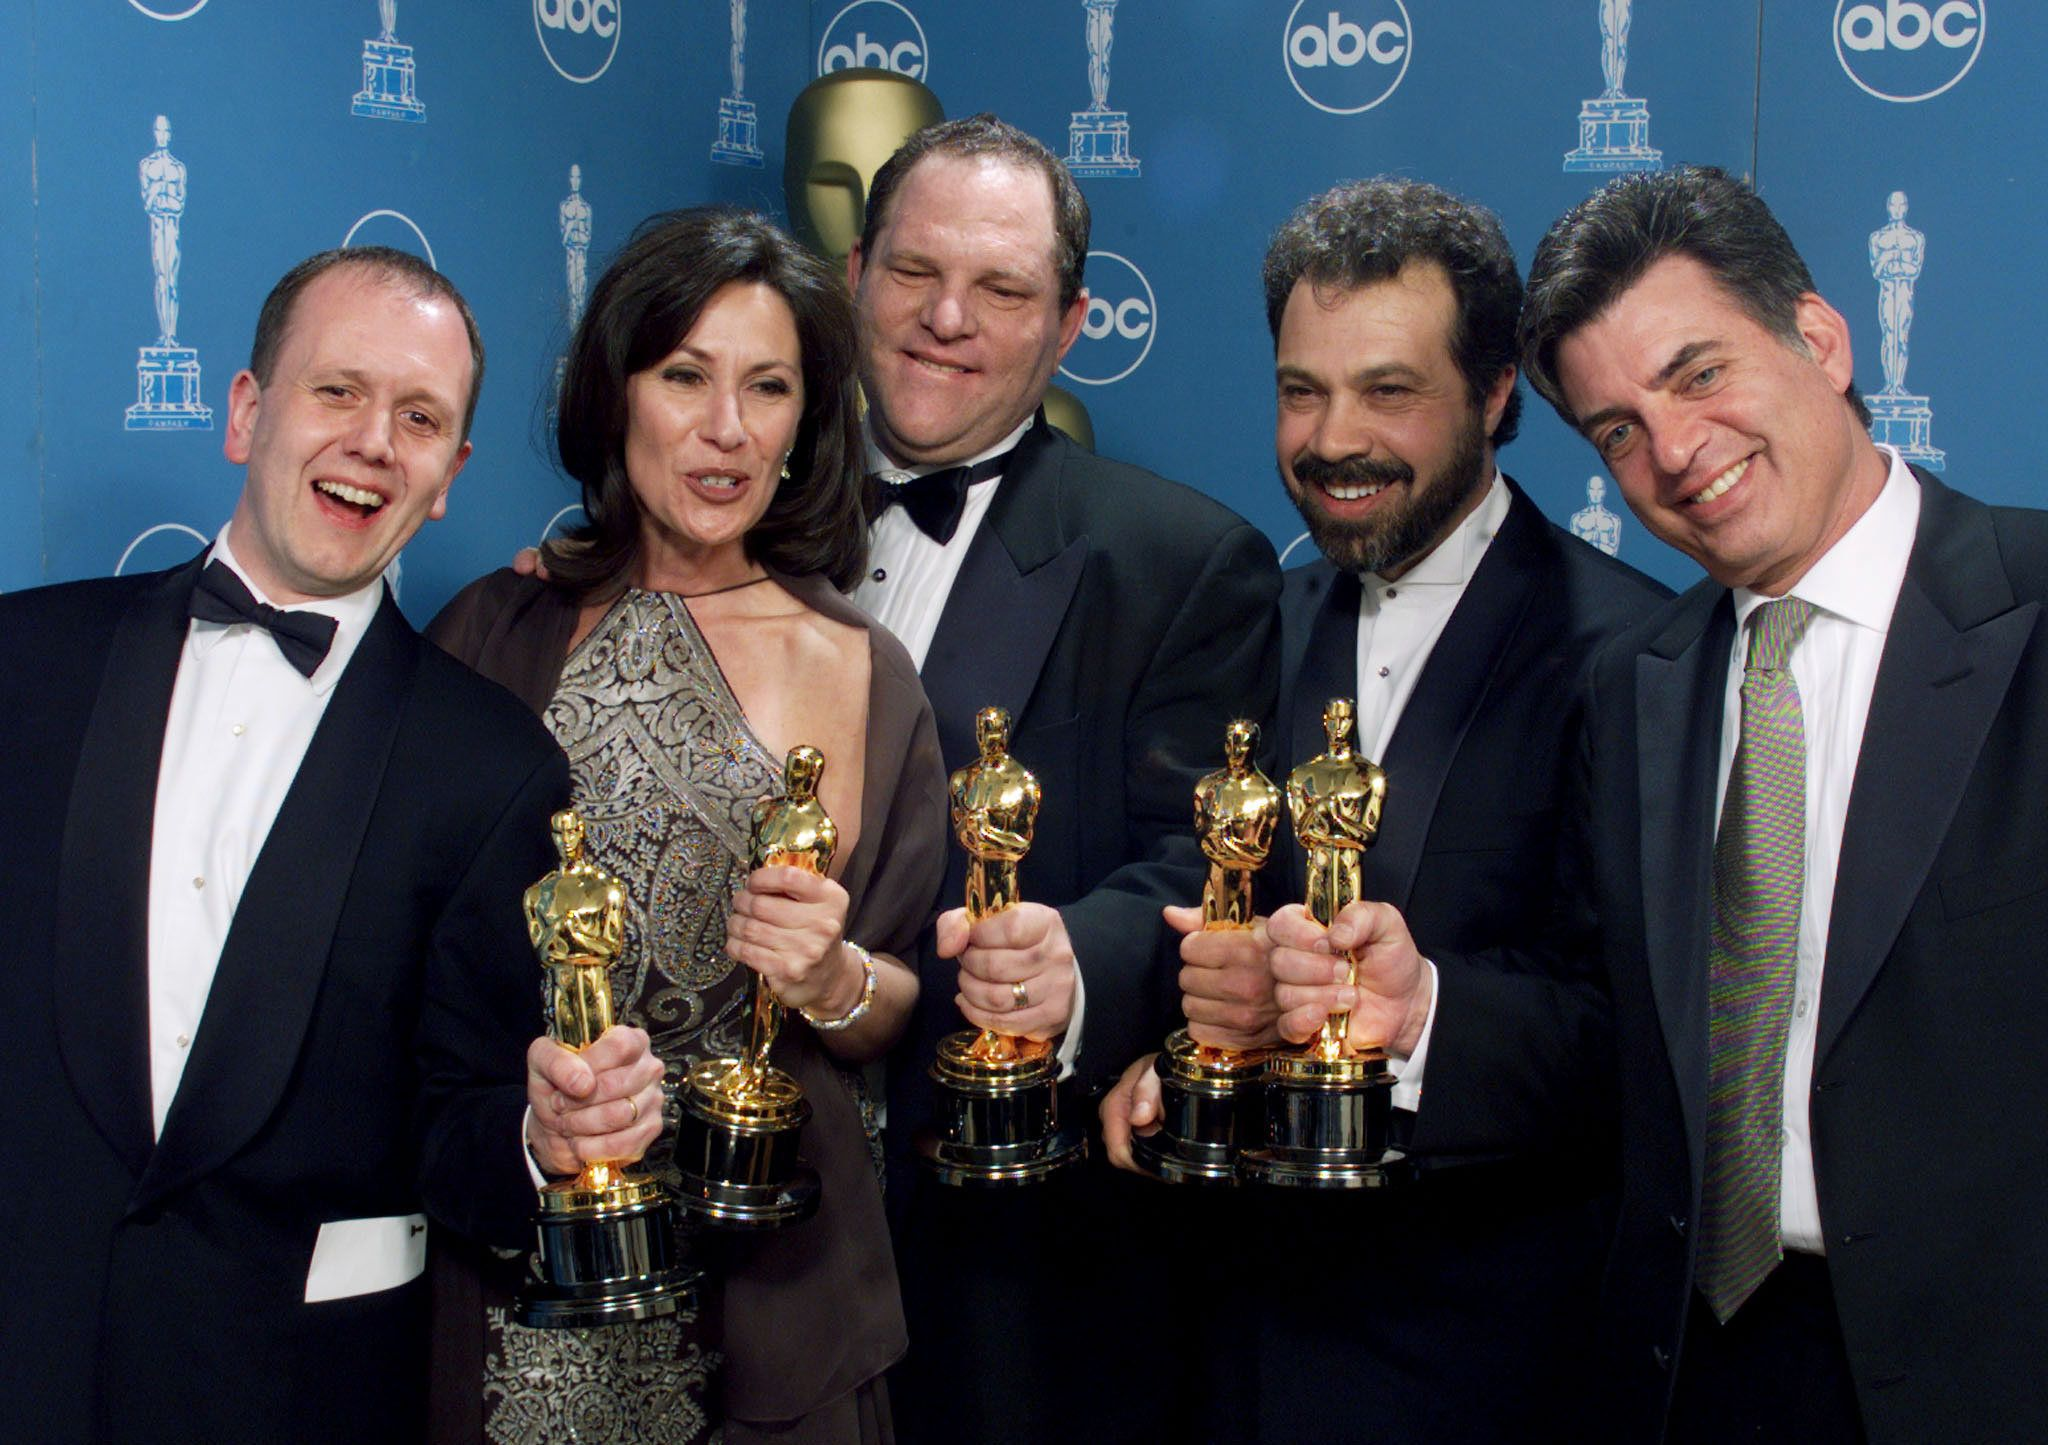 """The producers of the Miramax film """"Shakespeare in Love"""" hold their Oscars after their film won Best Picture at the 71st Annual Academy Awards, March 21 at the Dorothy Chandler Pavilion in Los Angeles. From left are David Parfitt, Donna Gigliotti, Harvey Weinstein, Edward Zwick and Marc Norman. **DIGITAL IMAGE**"""